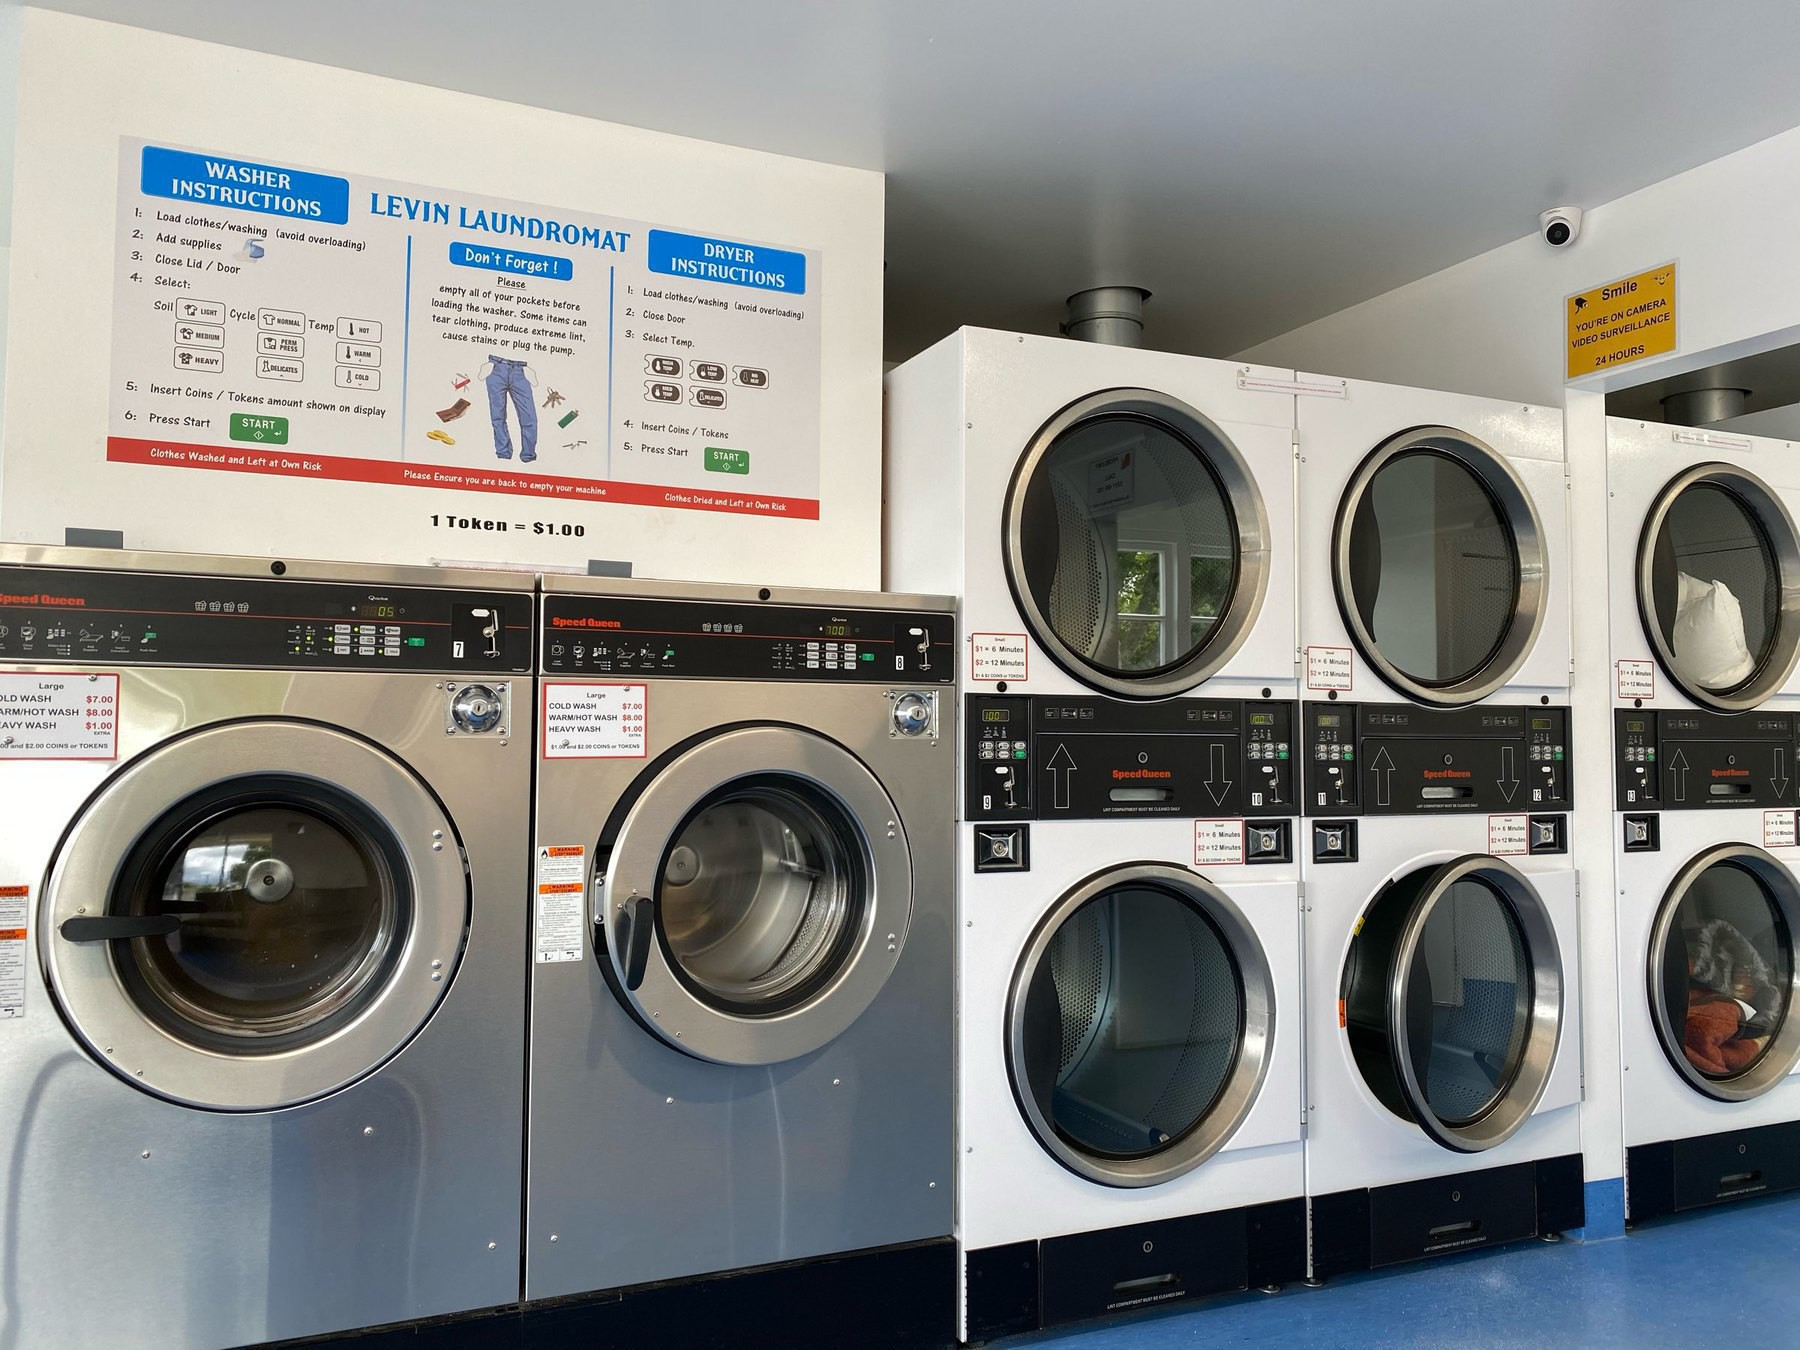 washers and dryers.